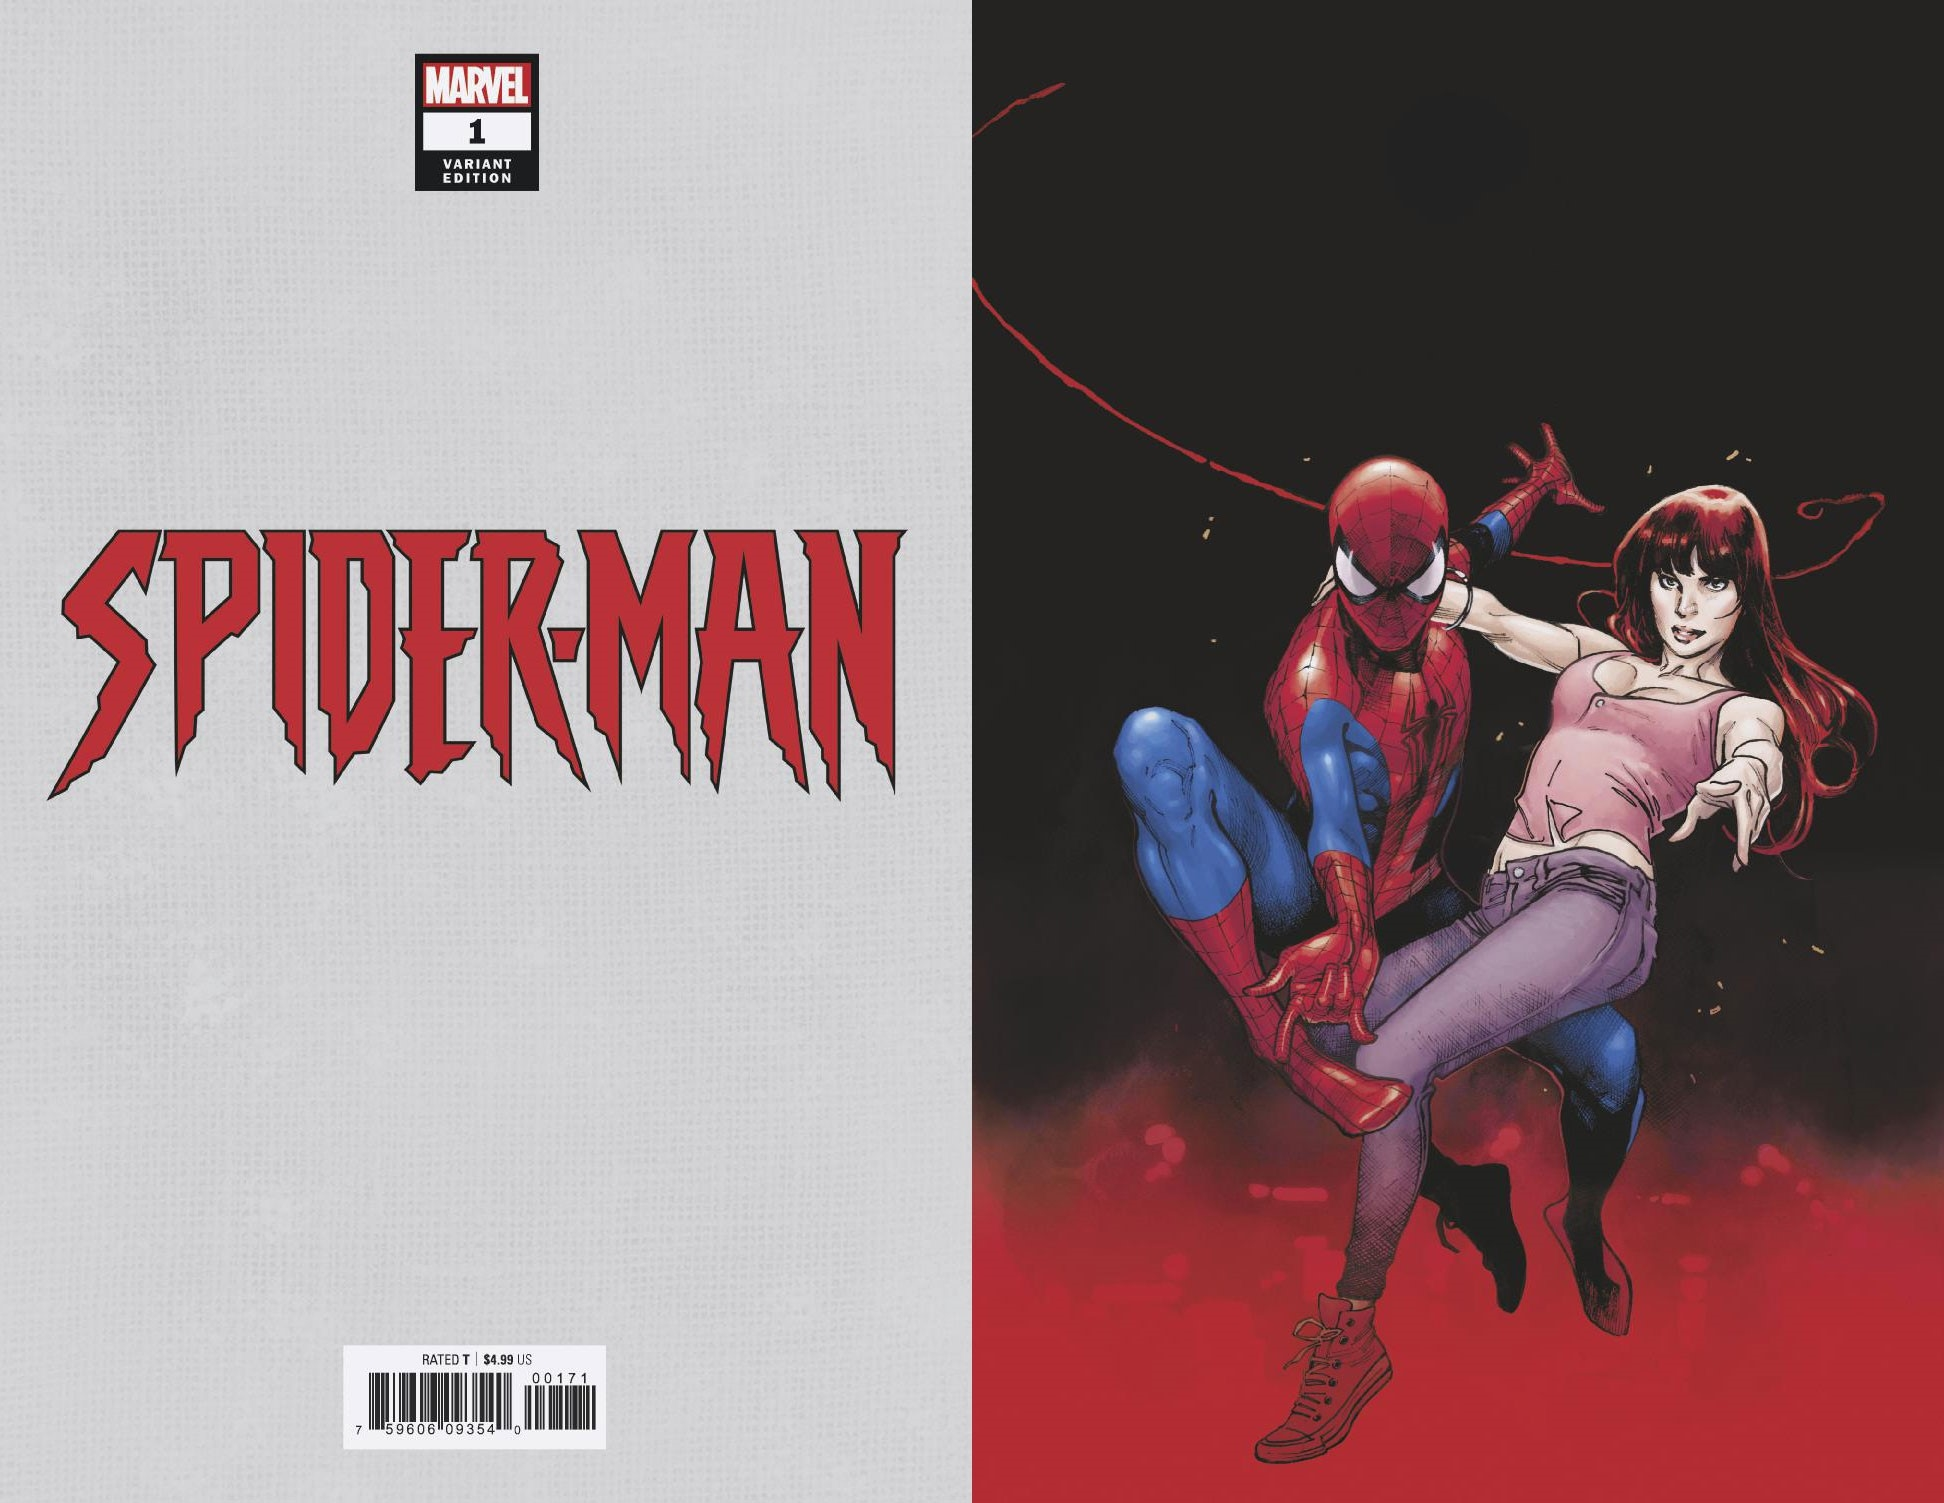 SPIDER-MAN #1 (OF 5) COIPEL VIRGIN VAR